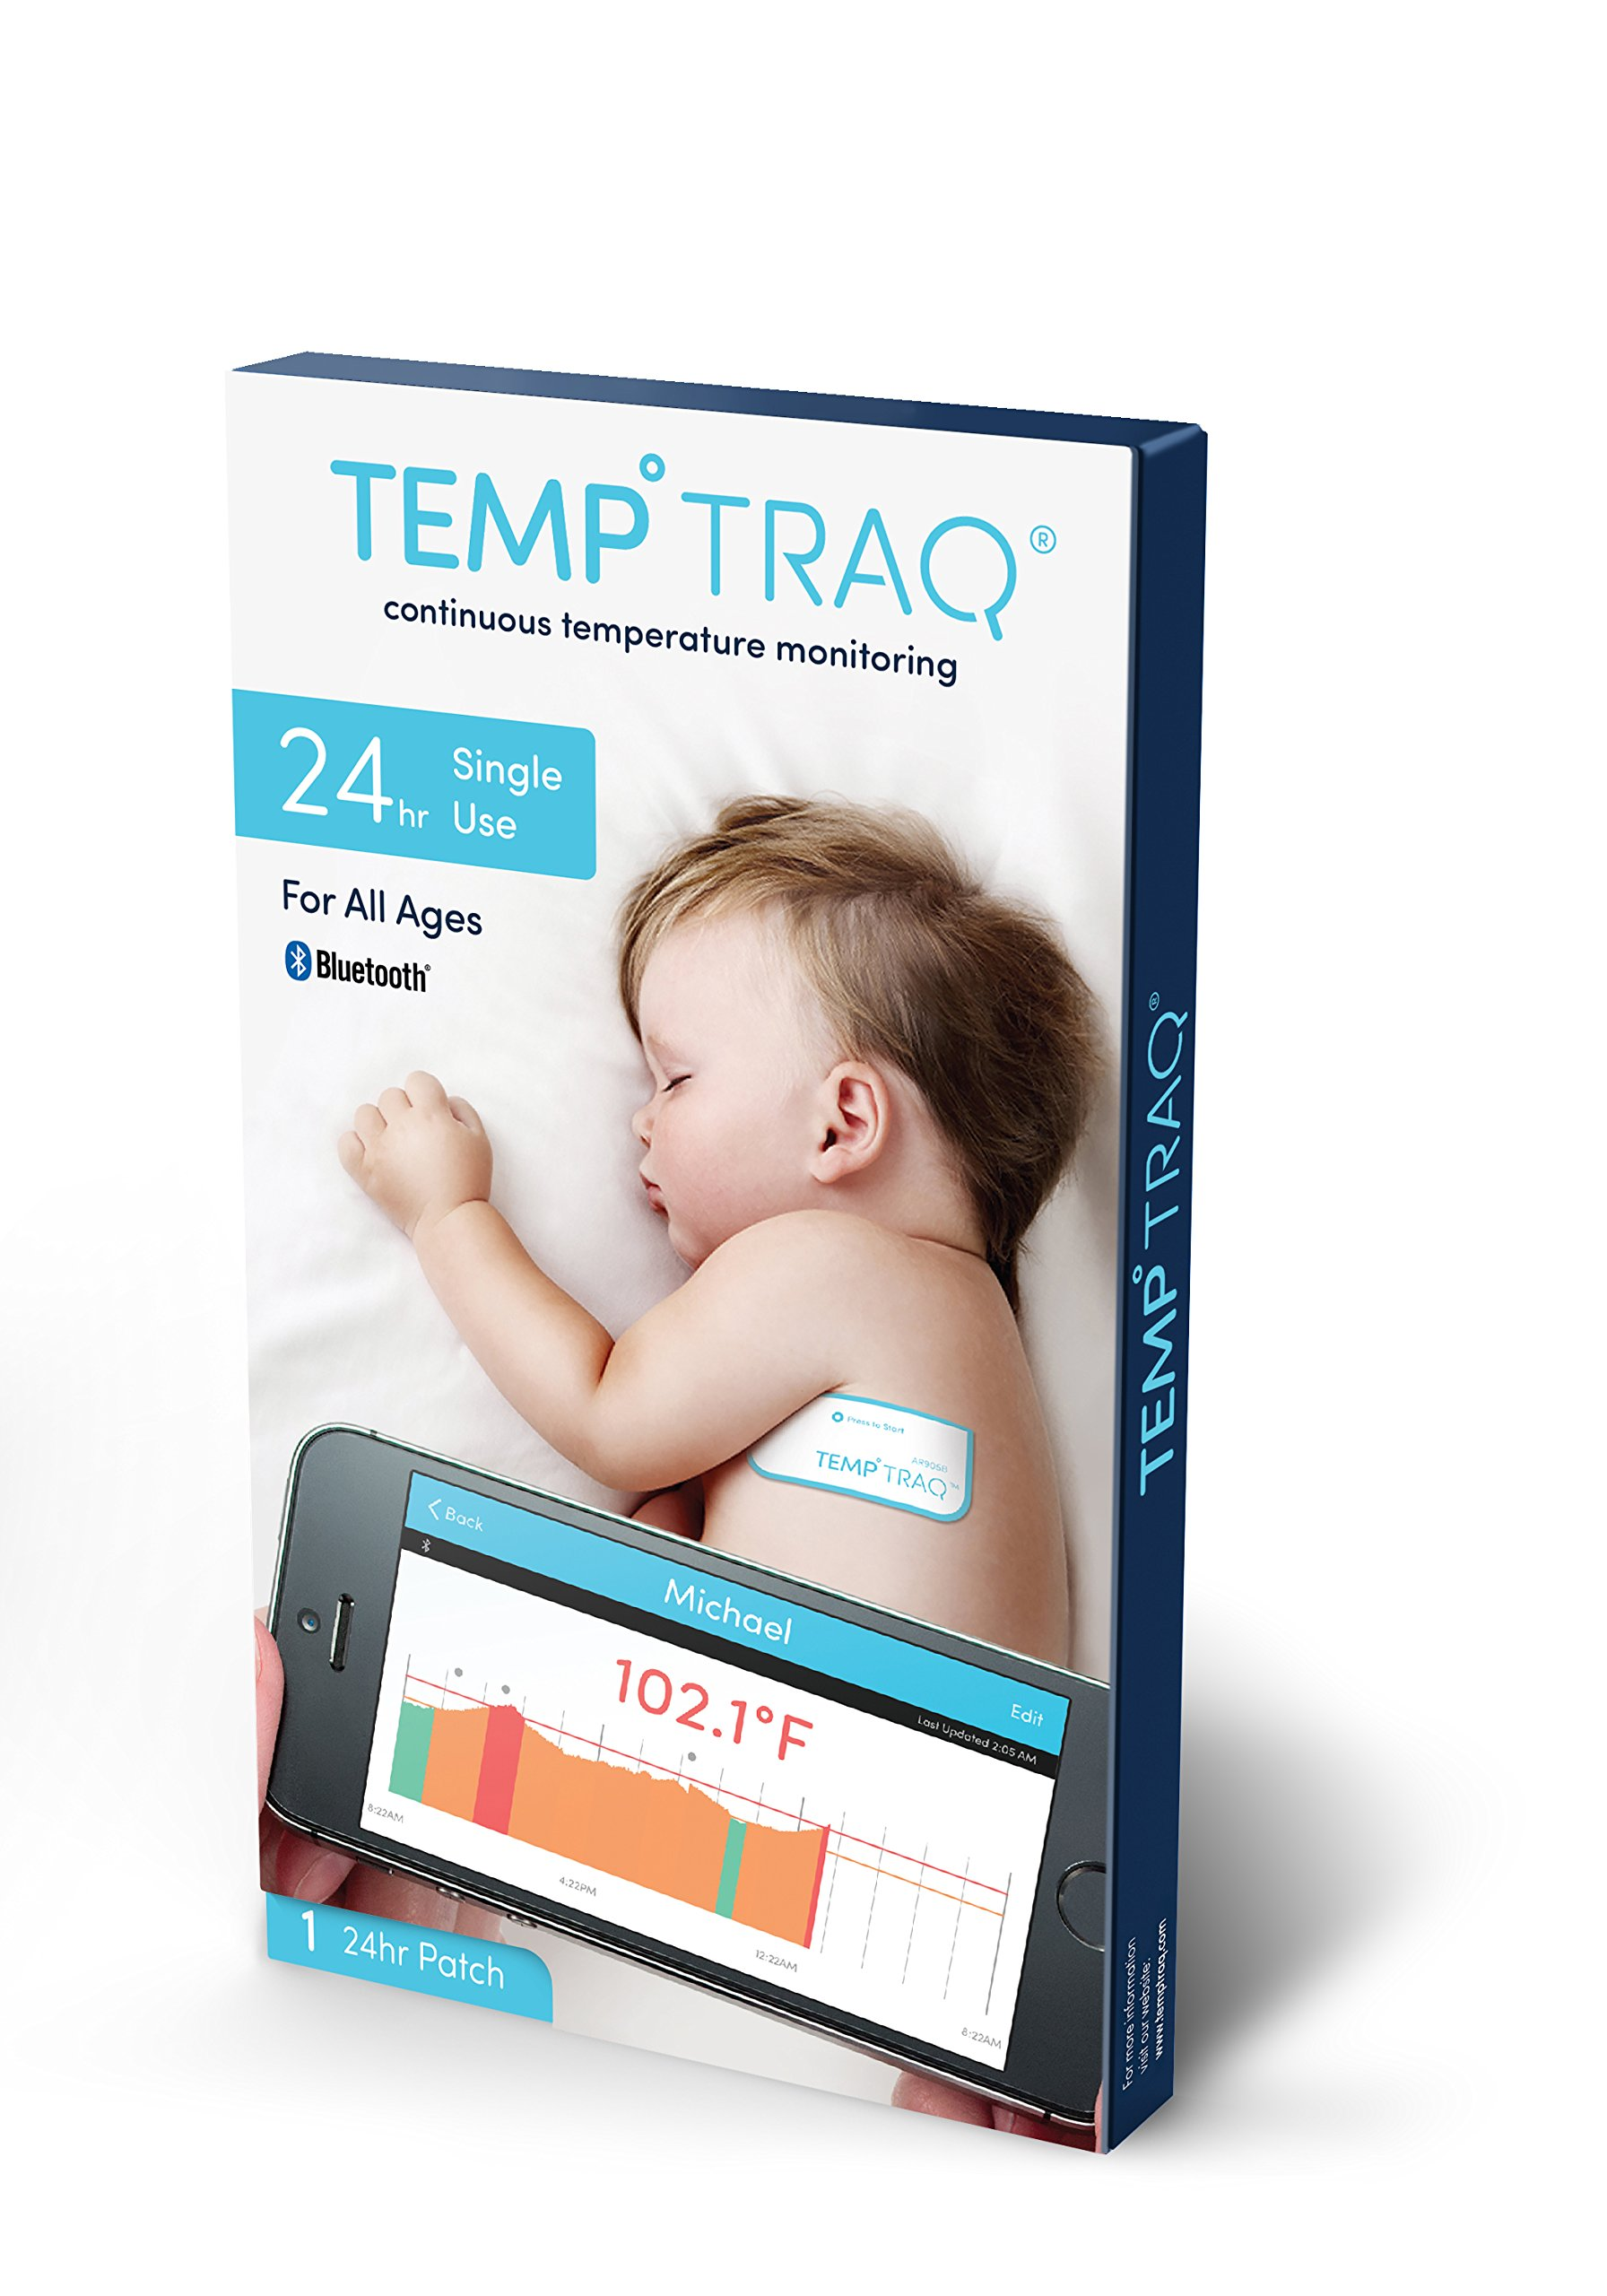 TempTraq 24HR Intelligent Fever Monitoring | Wearable Smart Thermometer FDA-Cleared with Wireless iOS + Android Mobile Alerts